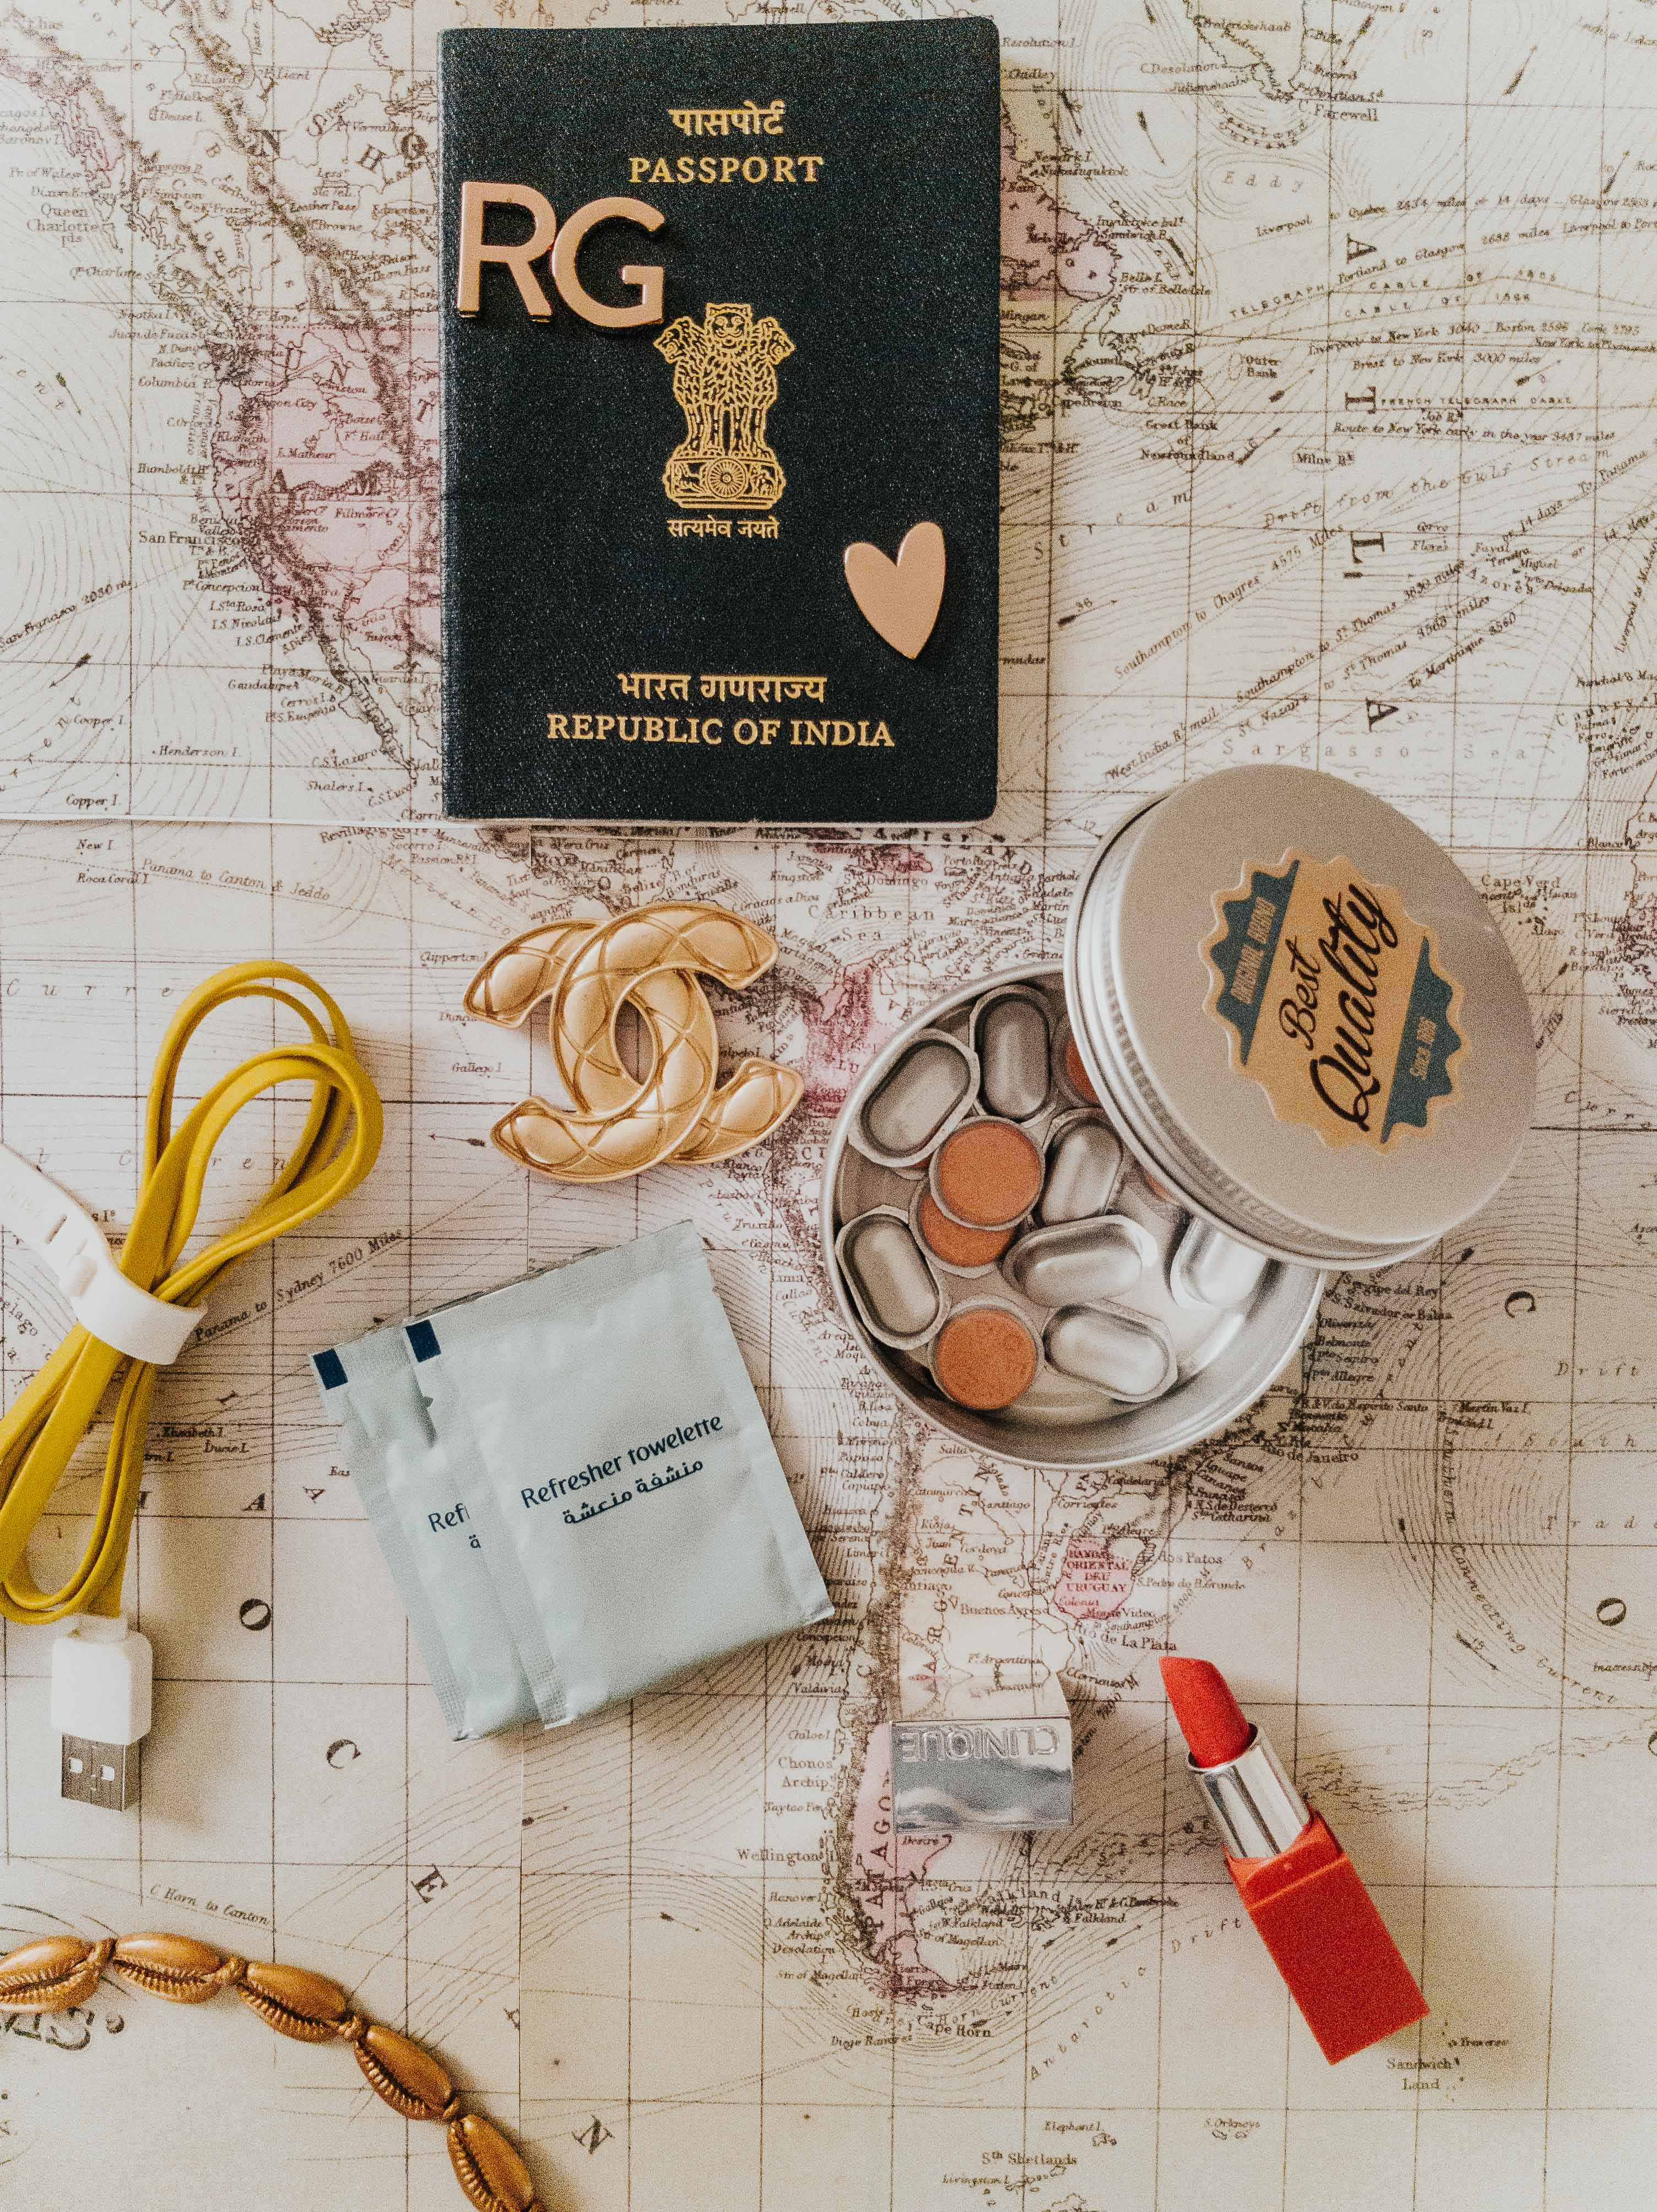 travel packing list items in flatlay a map passport usb cable lipstick medicines